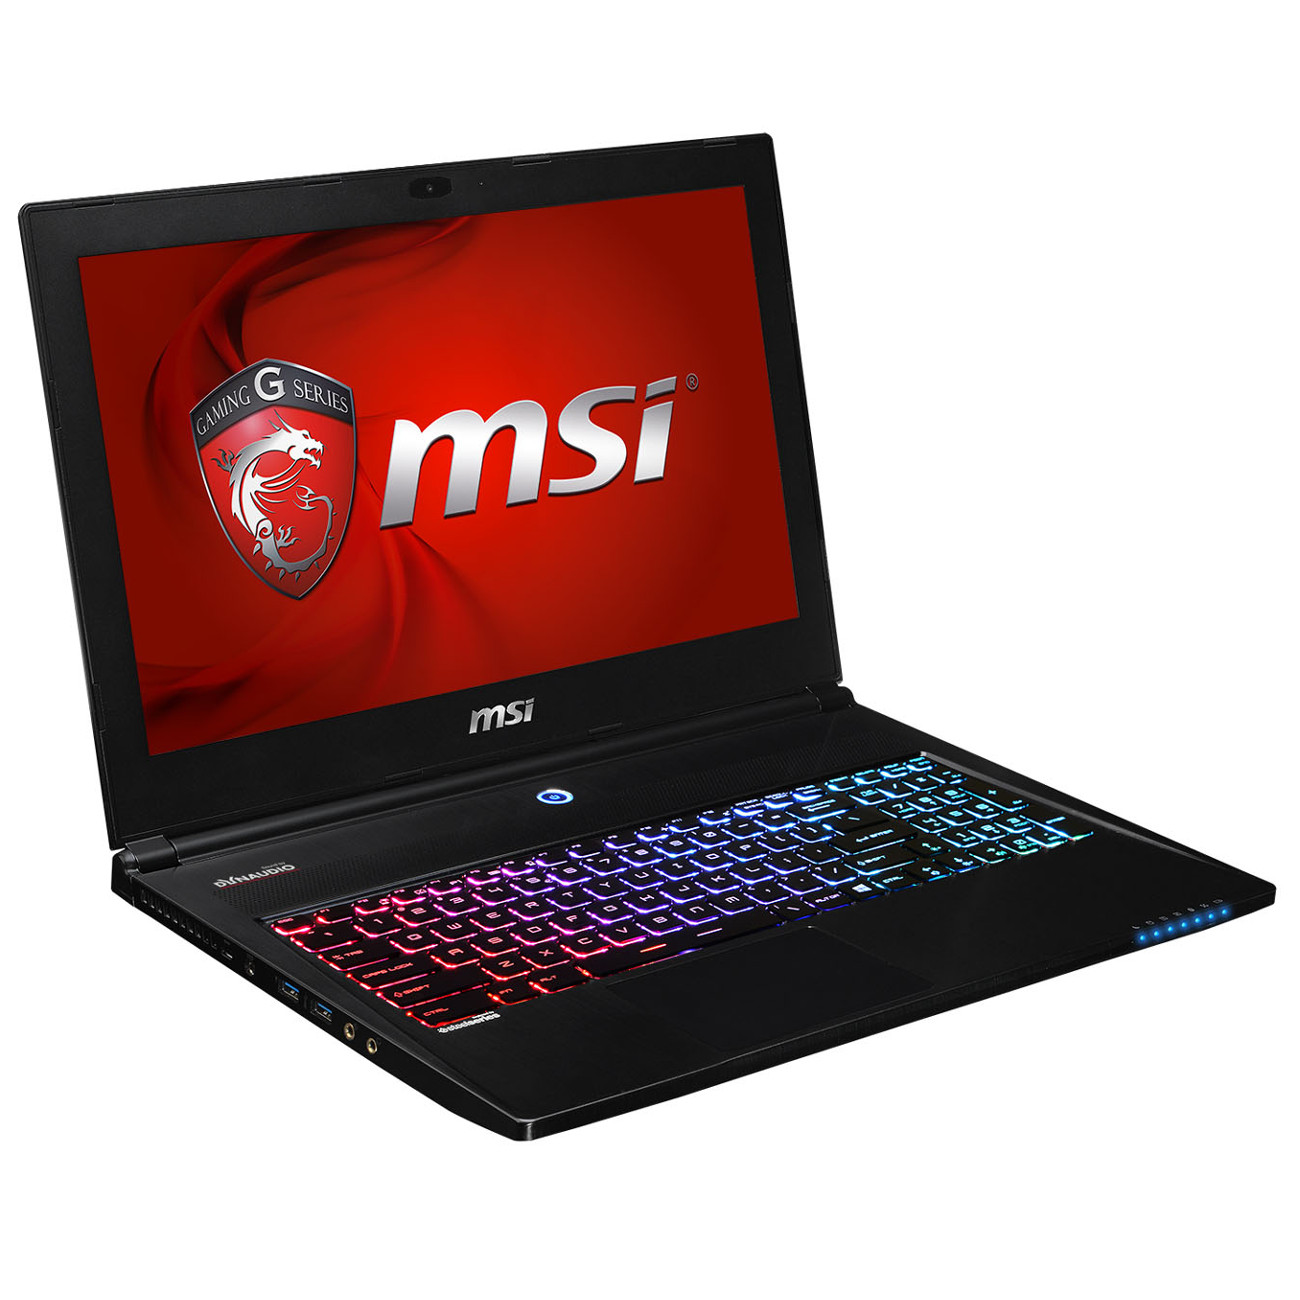 "PC portable MSI GS60 2PC-028XFR Ghost Intel Core i7-4700HQ 8 Go SSD 128 Go + HDD 1 To 15.6"" LED NVIDIA GeForce GTX 860M Wi-Fi AC/Bluetooth Webcam FreeDOS (garantie constructeur 1 an)"